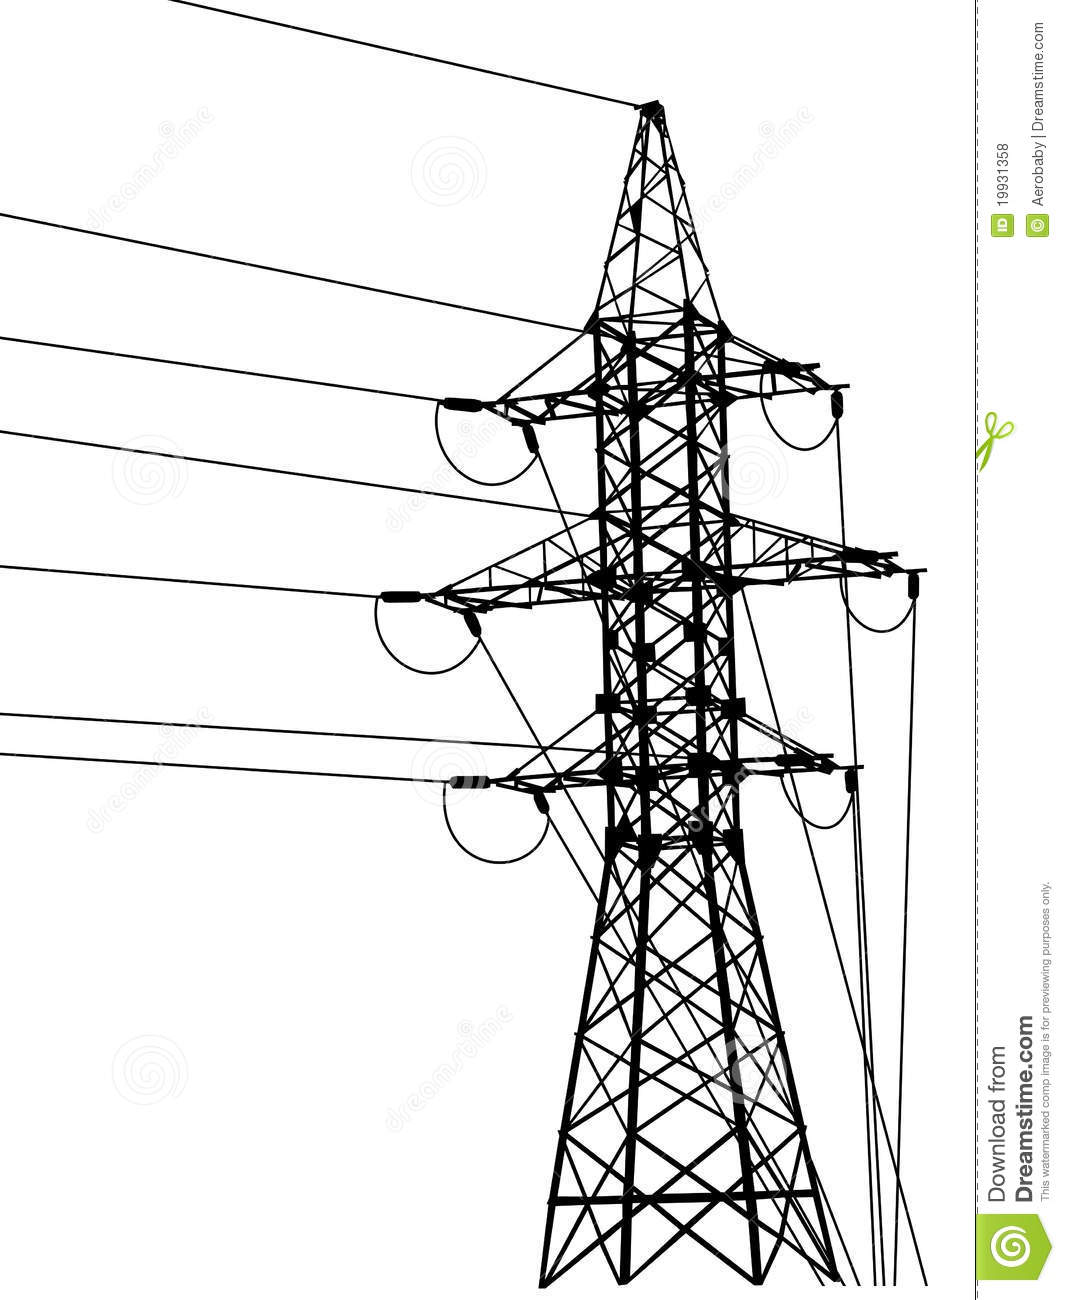 Electrical tower clipart #17